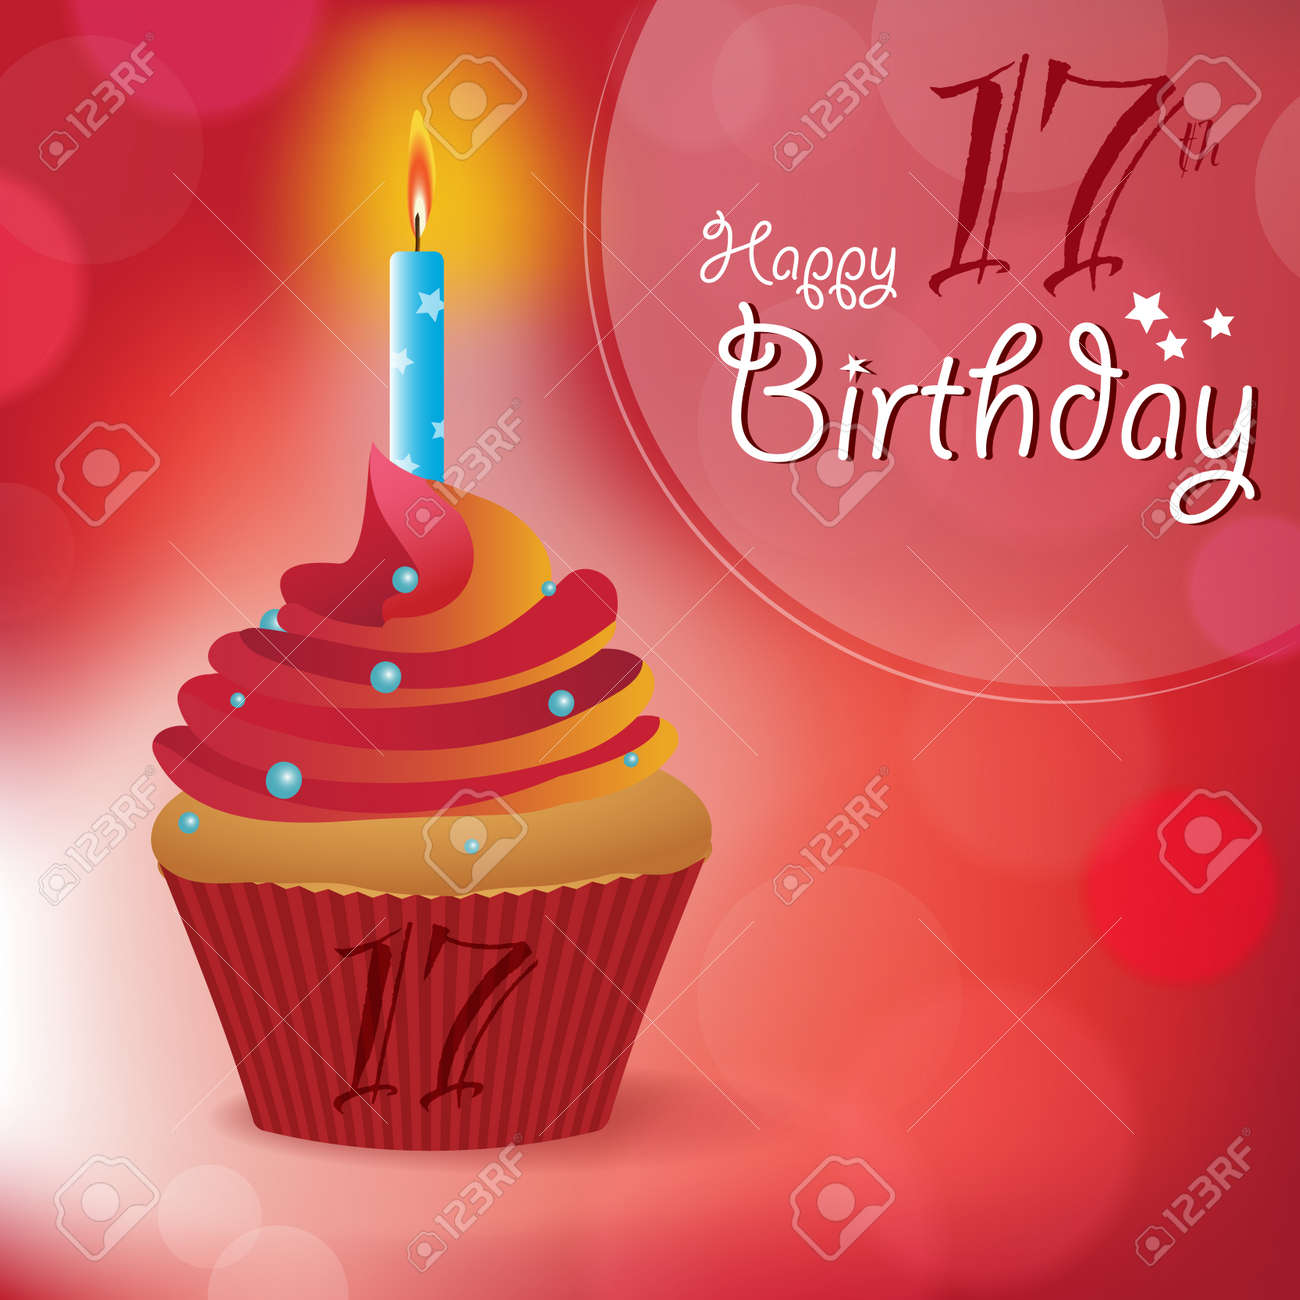 happy 17th birthday greeting invitation message bokeh vector background with a candle on a cupcake